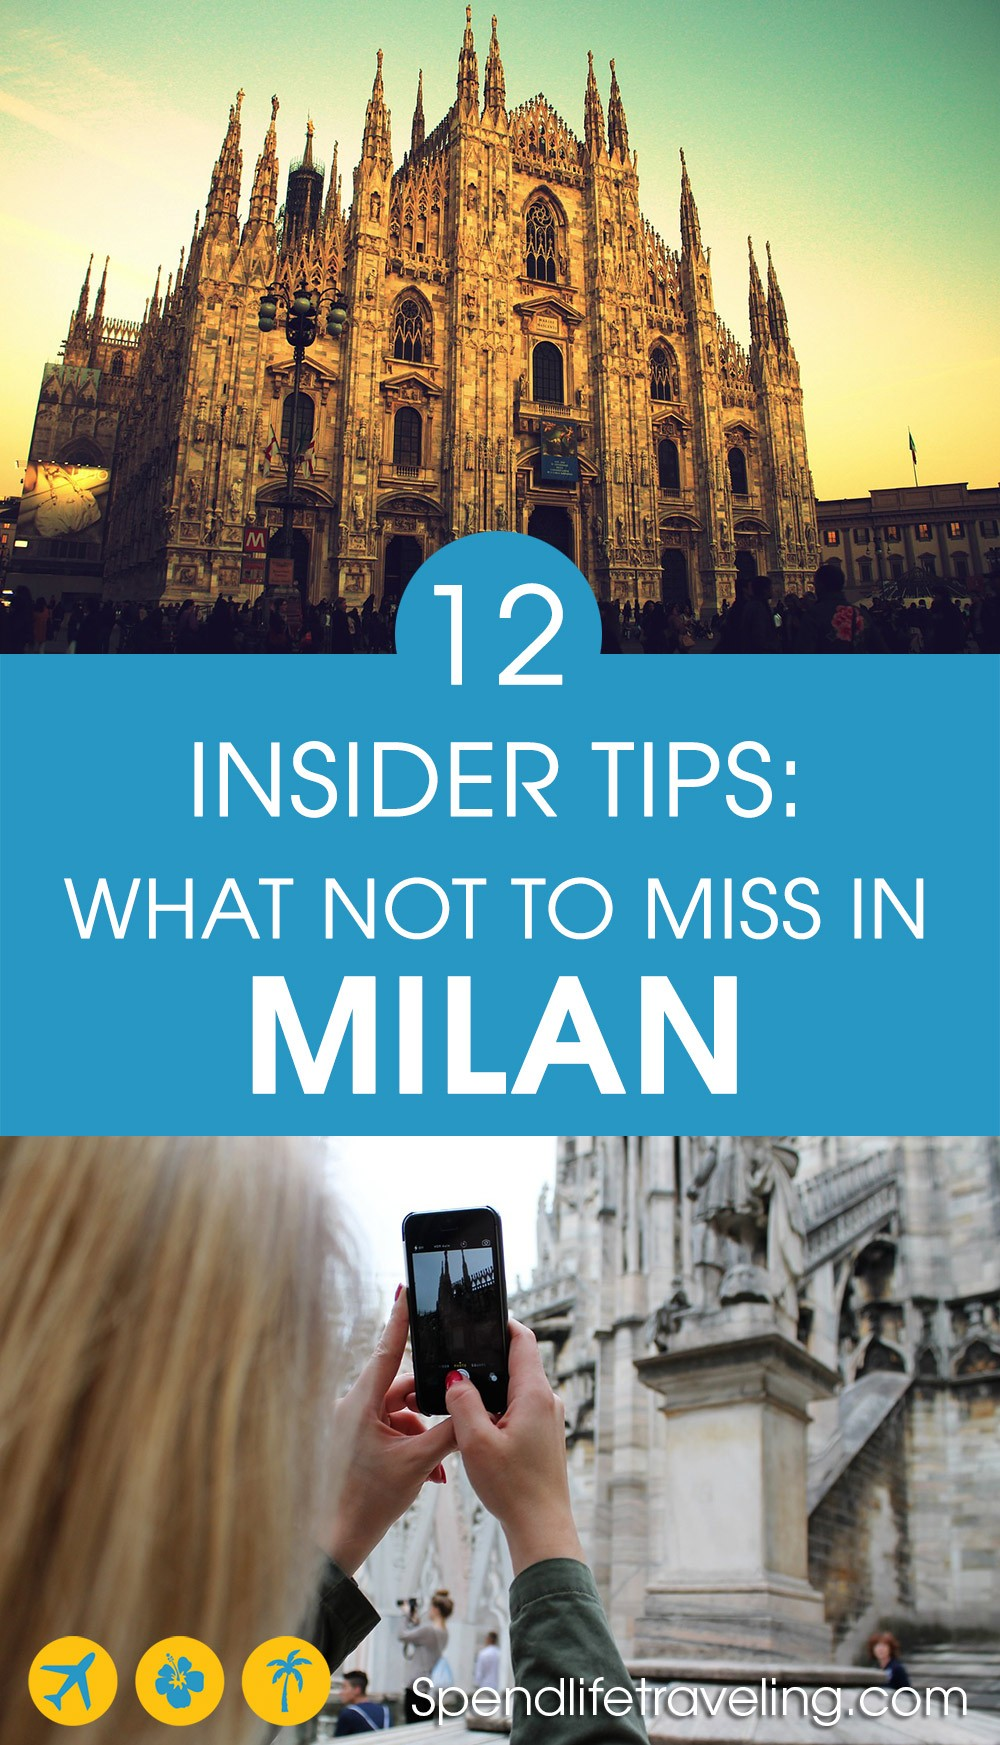 After having lived in Milan these are 12 things Farah recommends not to miss when visiting Milan